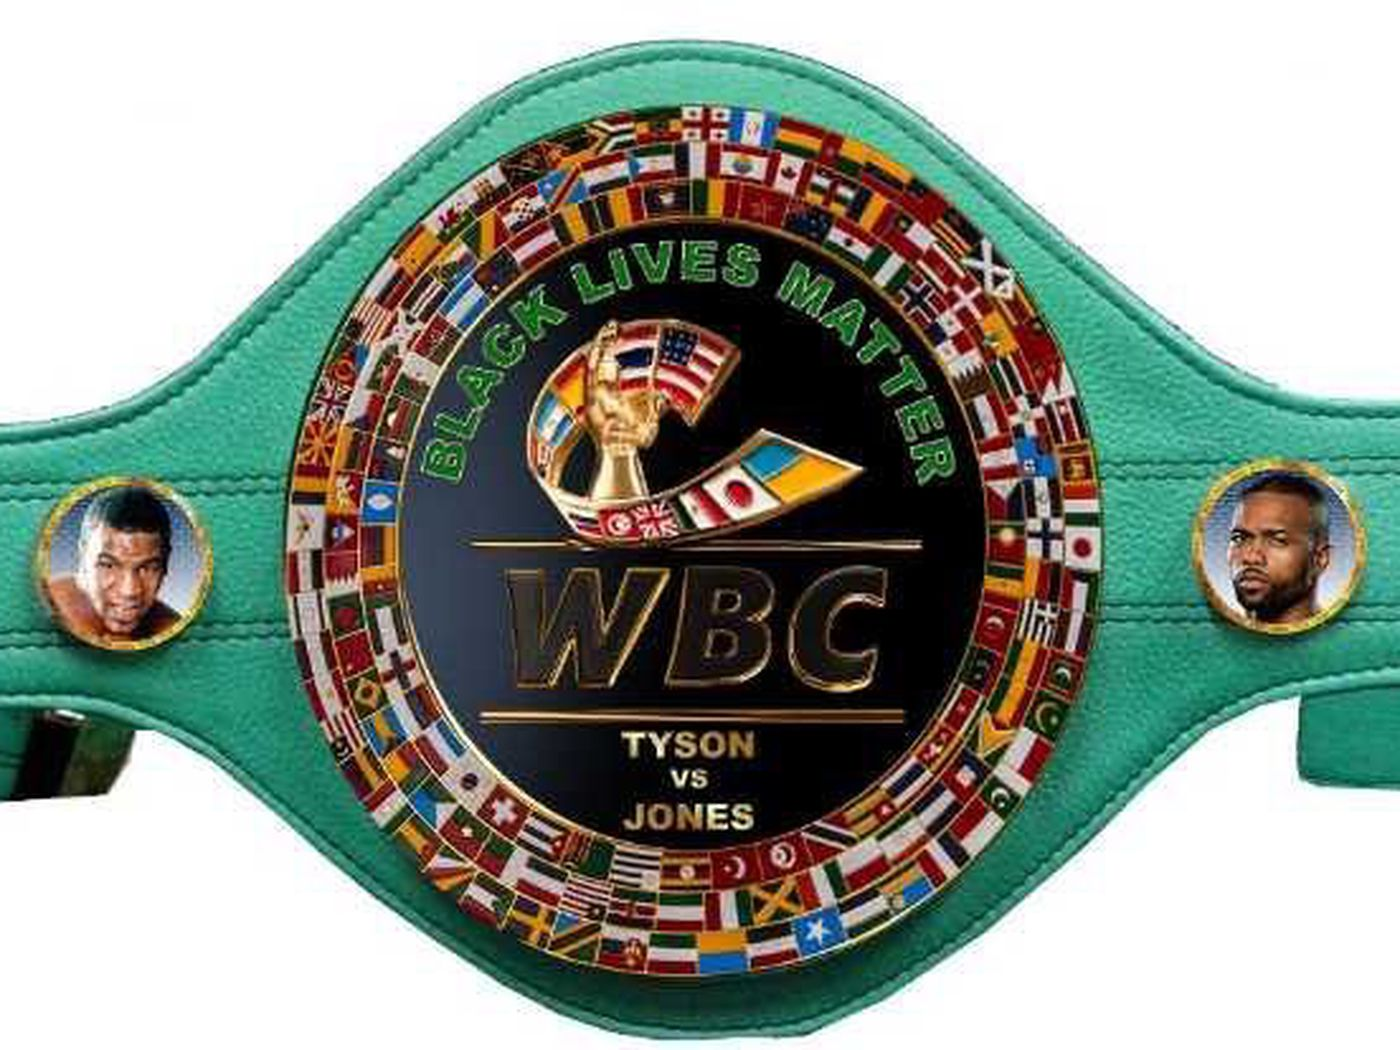 mike tyson and roy jones jr will compete for wbc frontline battle belt on nov 28 mmamania com mike tyson and roy jones jr will